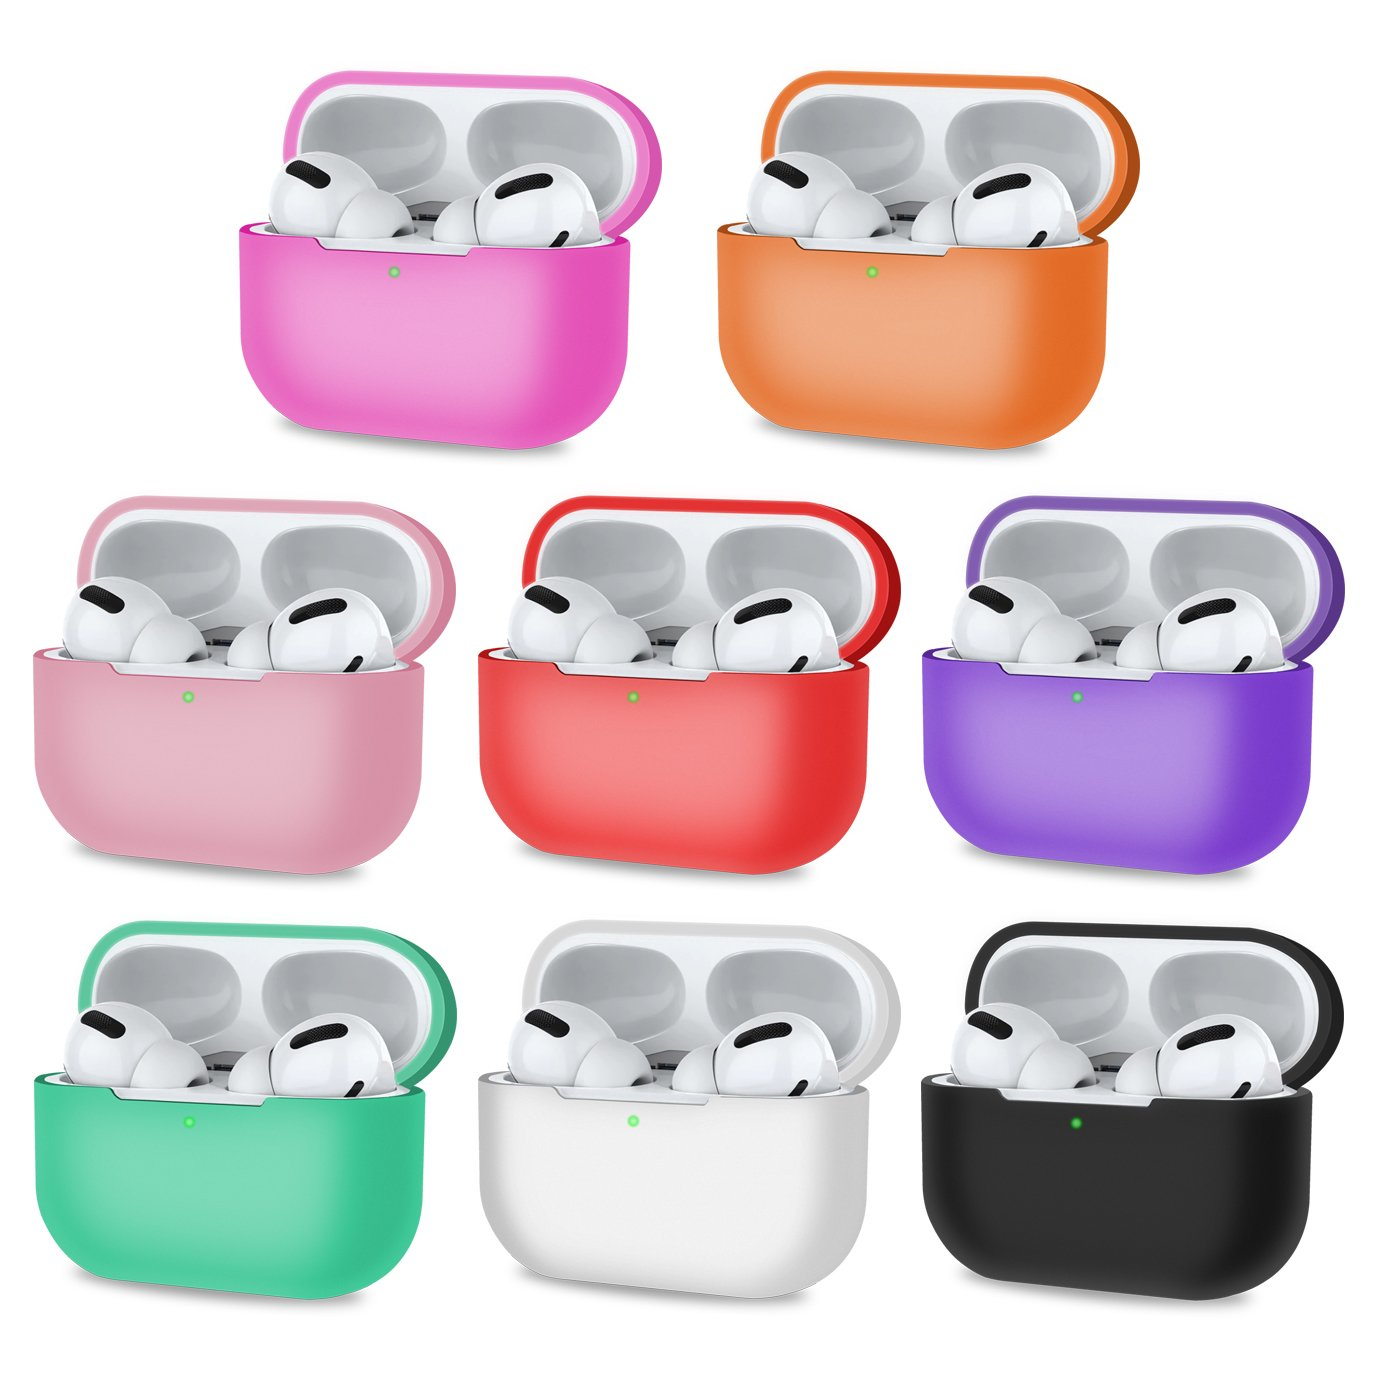 Protective Case for Airpods Pro with Front LED Visible - Multicolored, Audio Accessories by TradeNRG